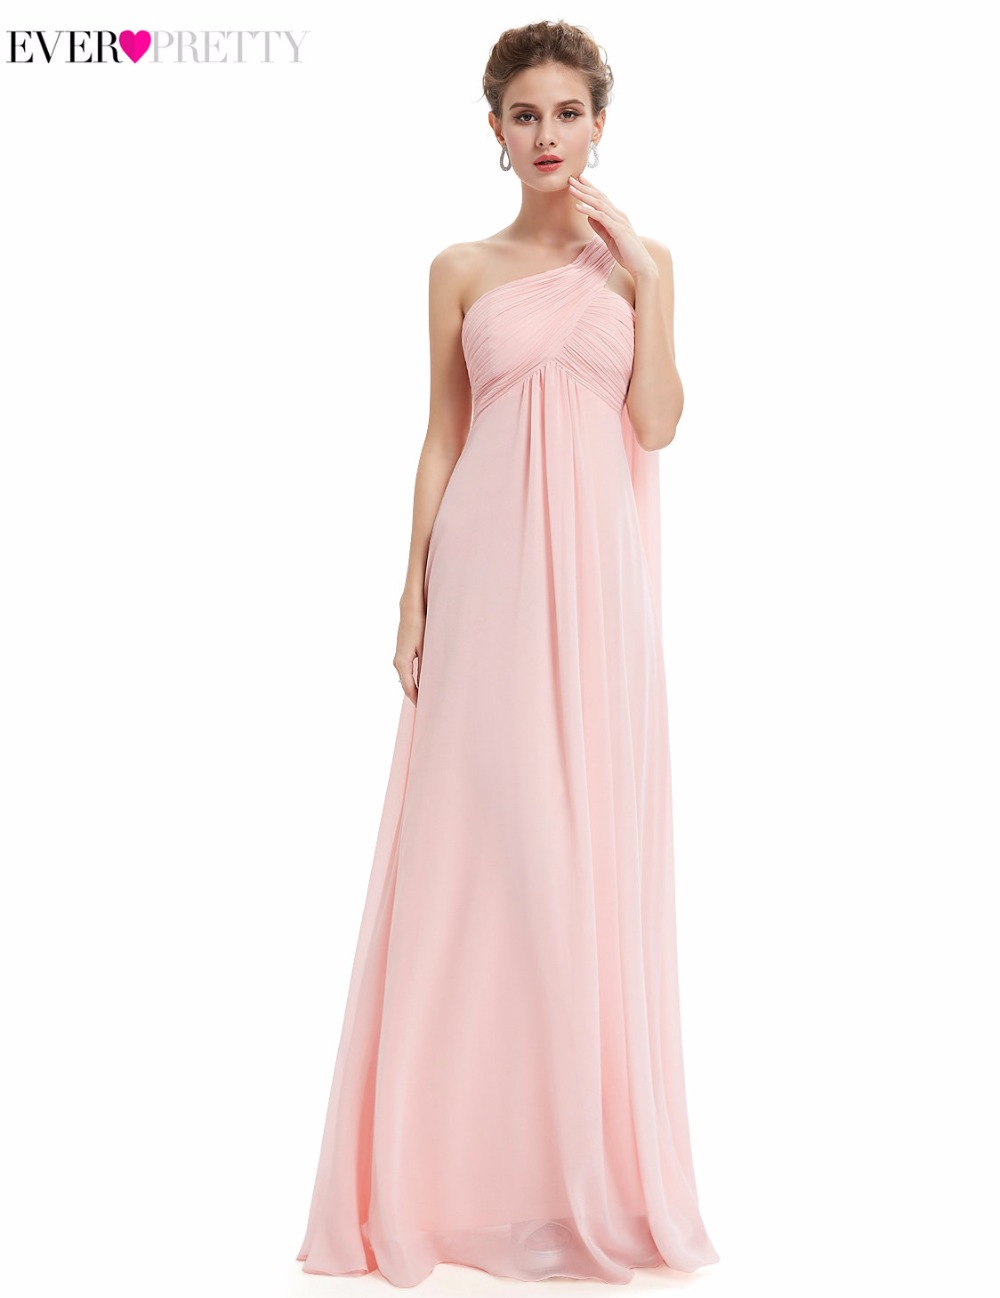 Clearance sale long bridesmaid dresses ever pretty for Wedding dresses sale online